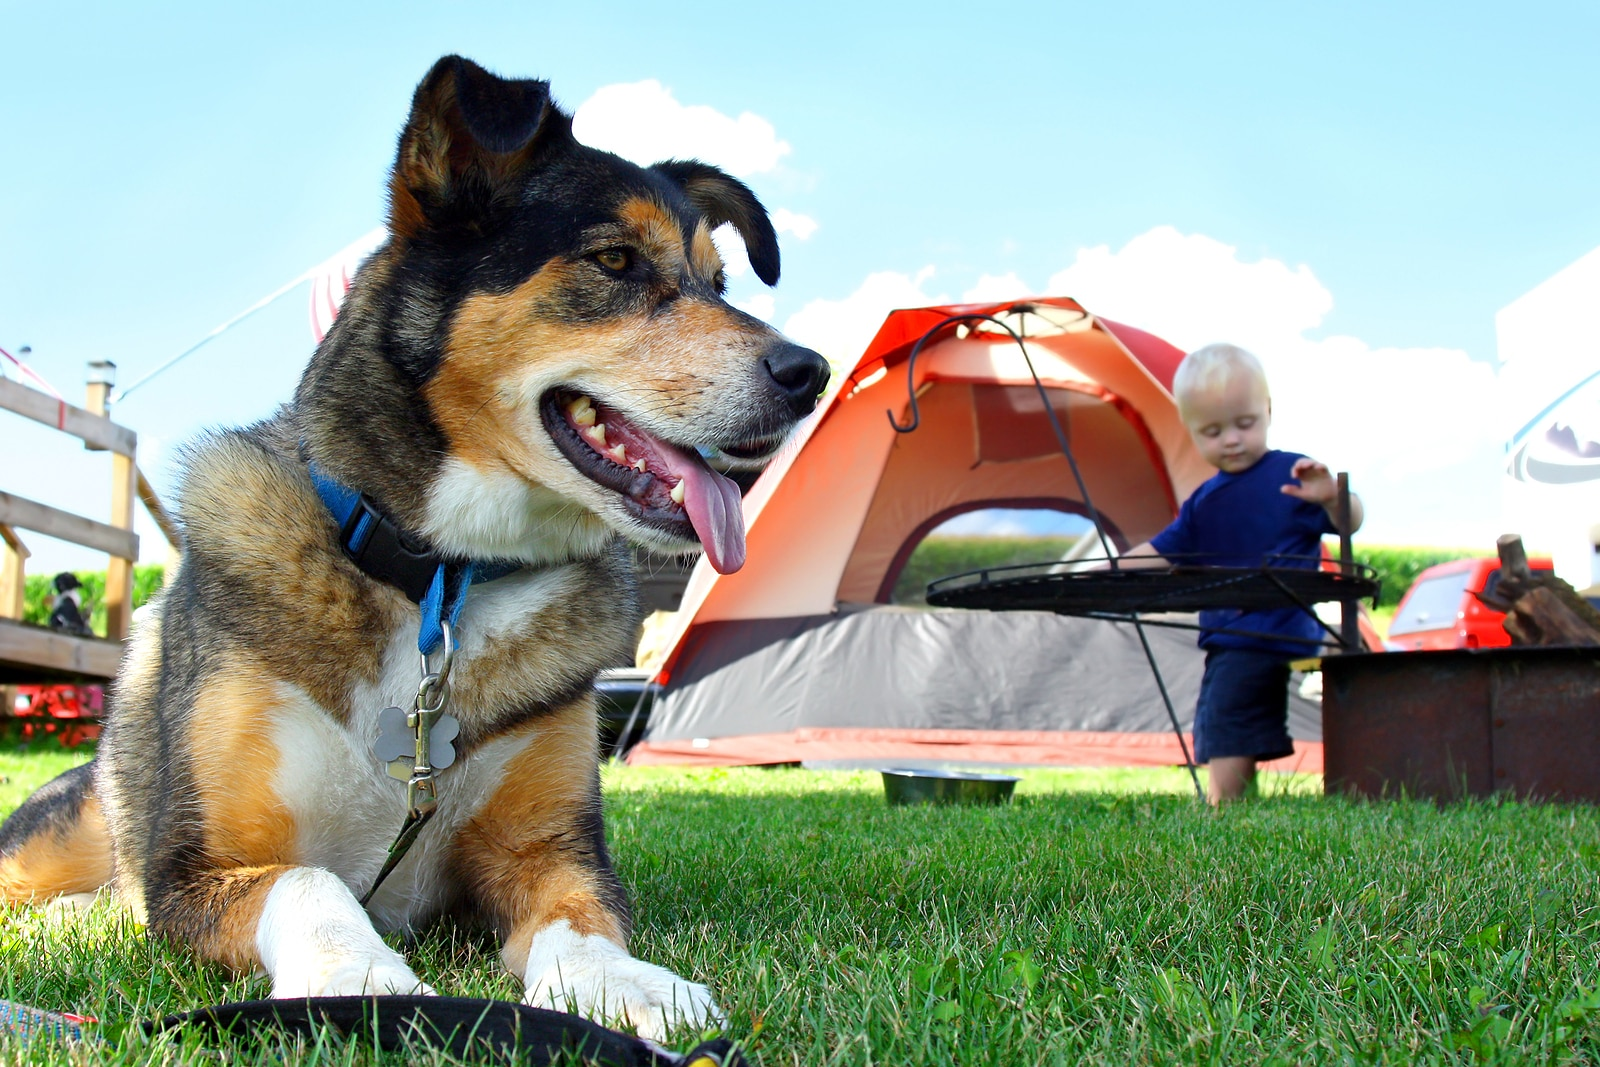 A happy friendly German Shepherd dog is laying at a campground by a tent and fireplace as a baby plays in the background